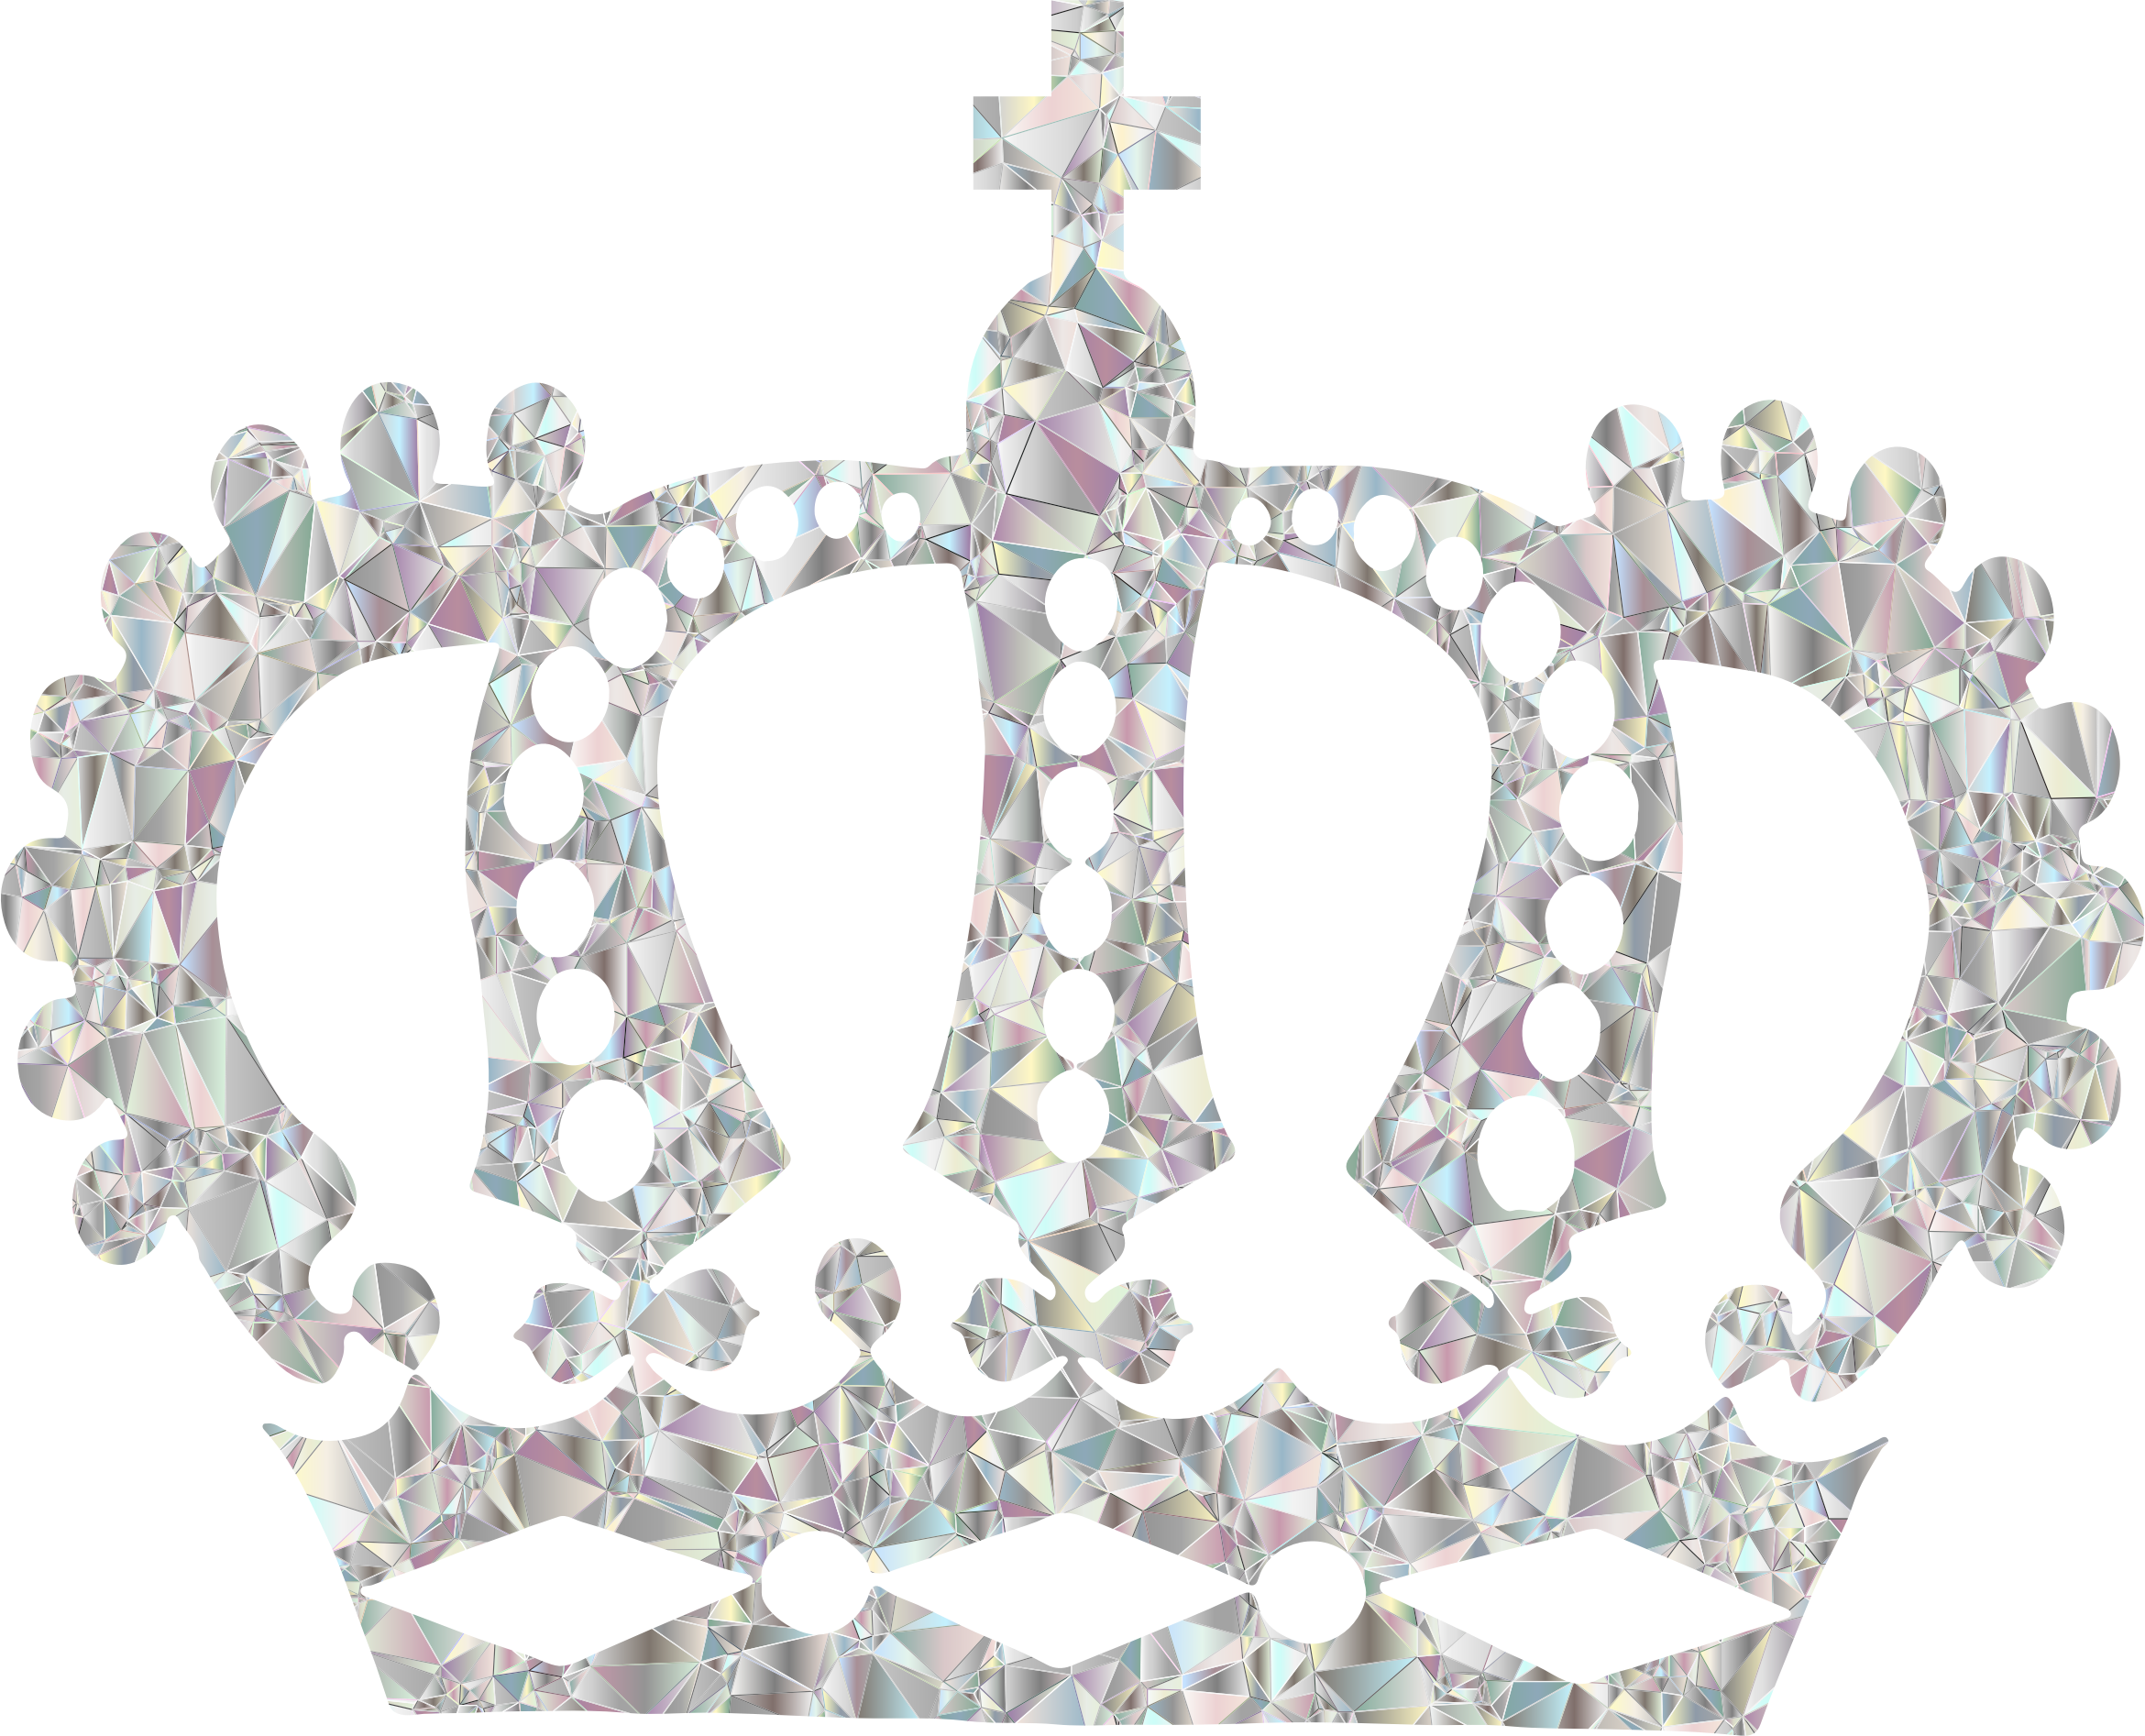 Crown clipart white svg library download Clip Art Princess Crown Clipart No Background Zvaiu96 svg library download